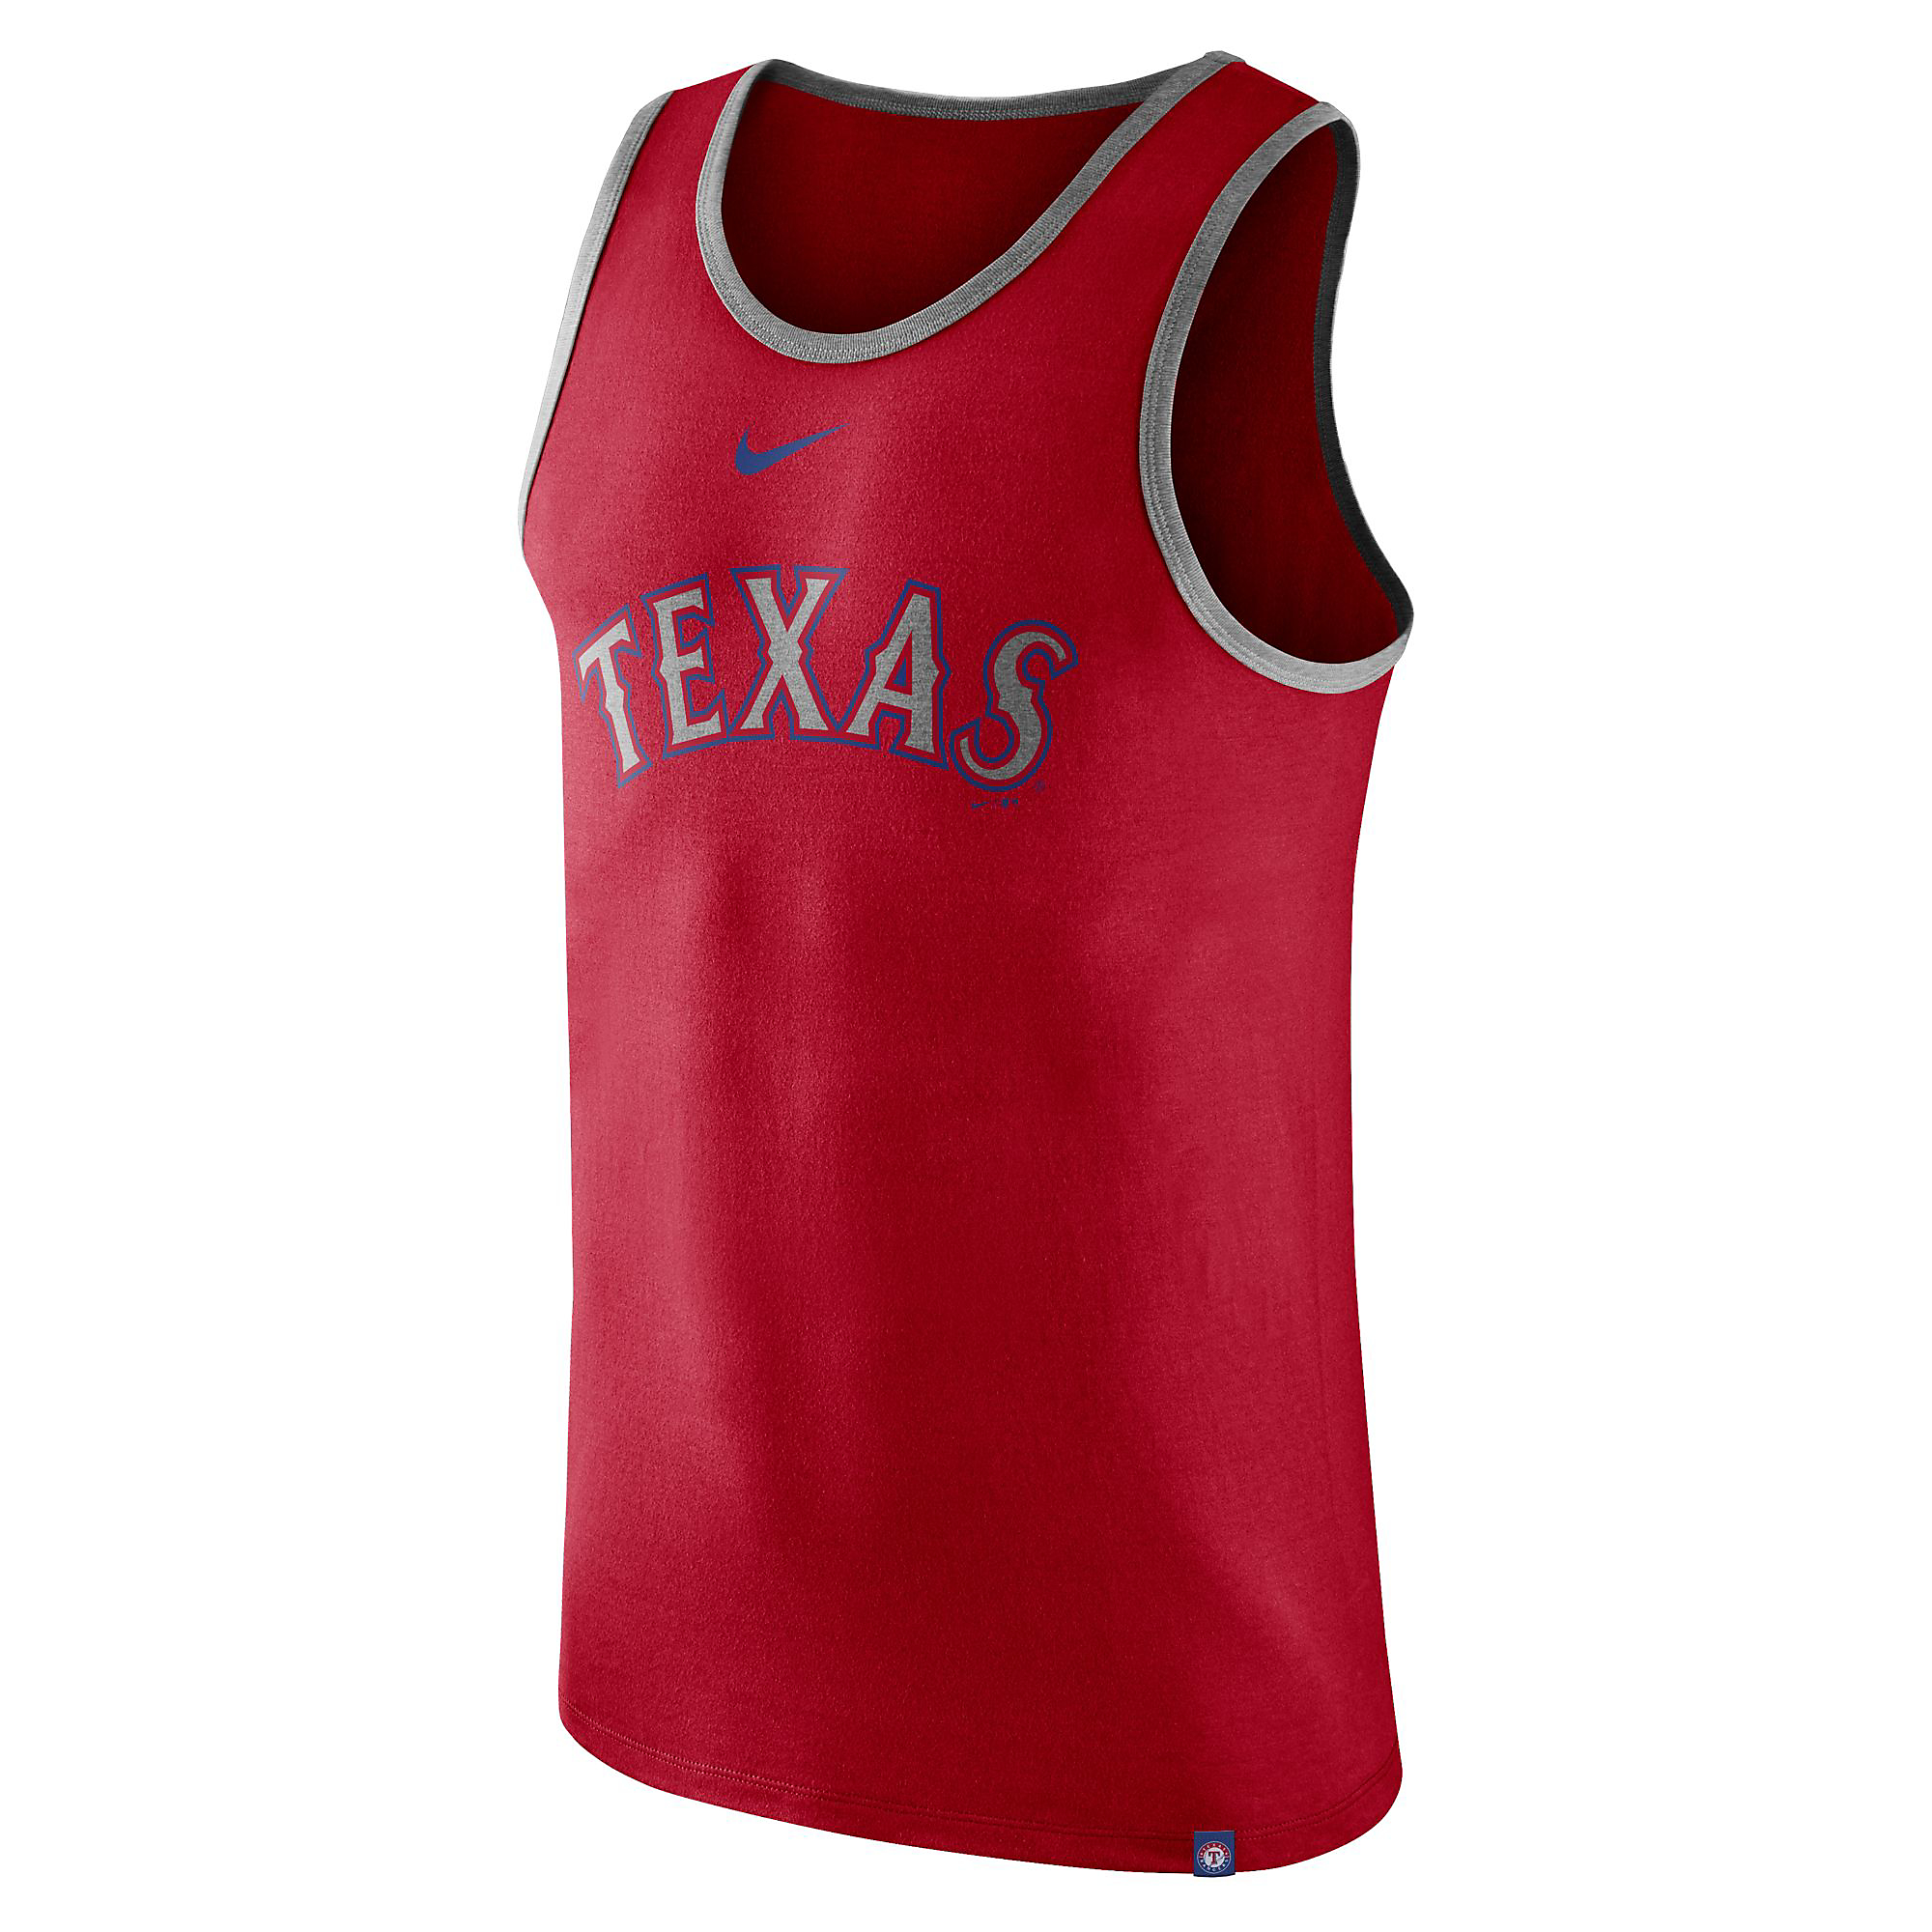 Texas Rangers Nike Cotton Wordmark Tank